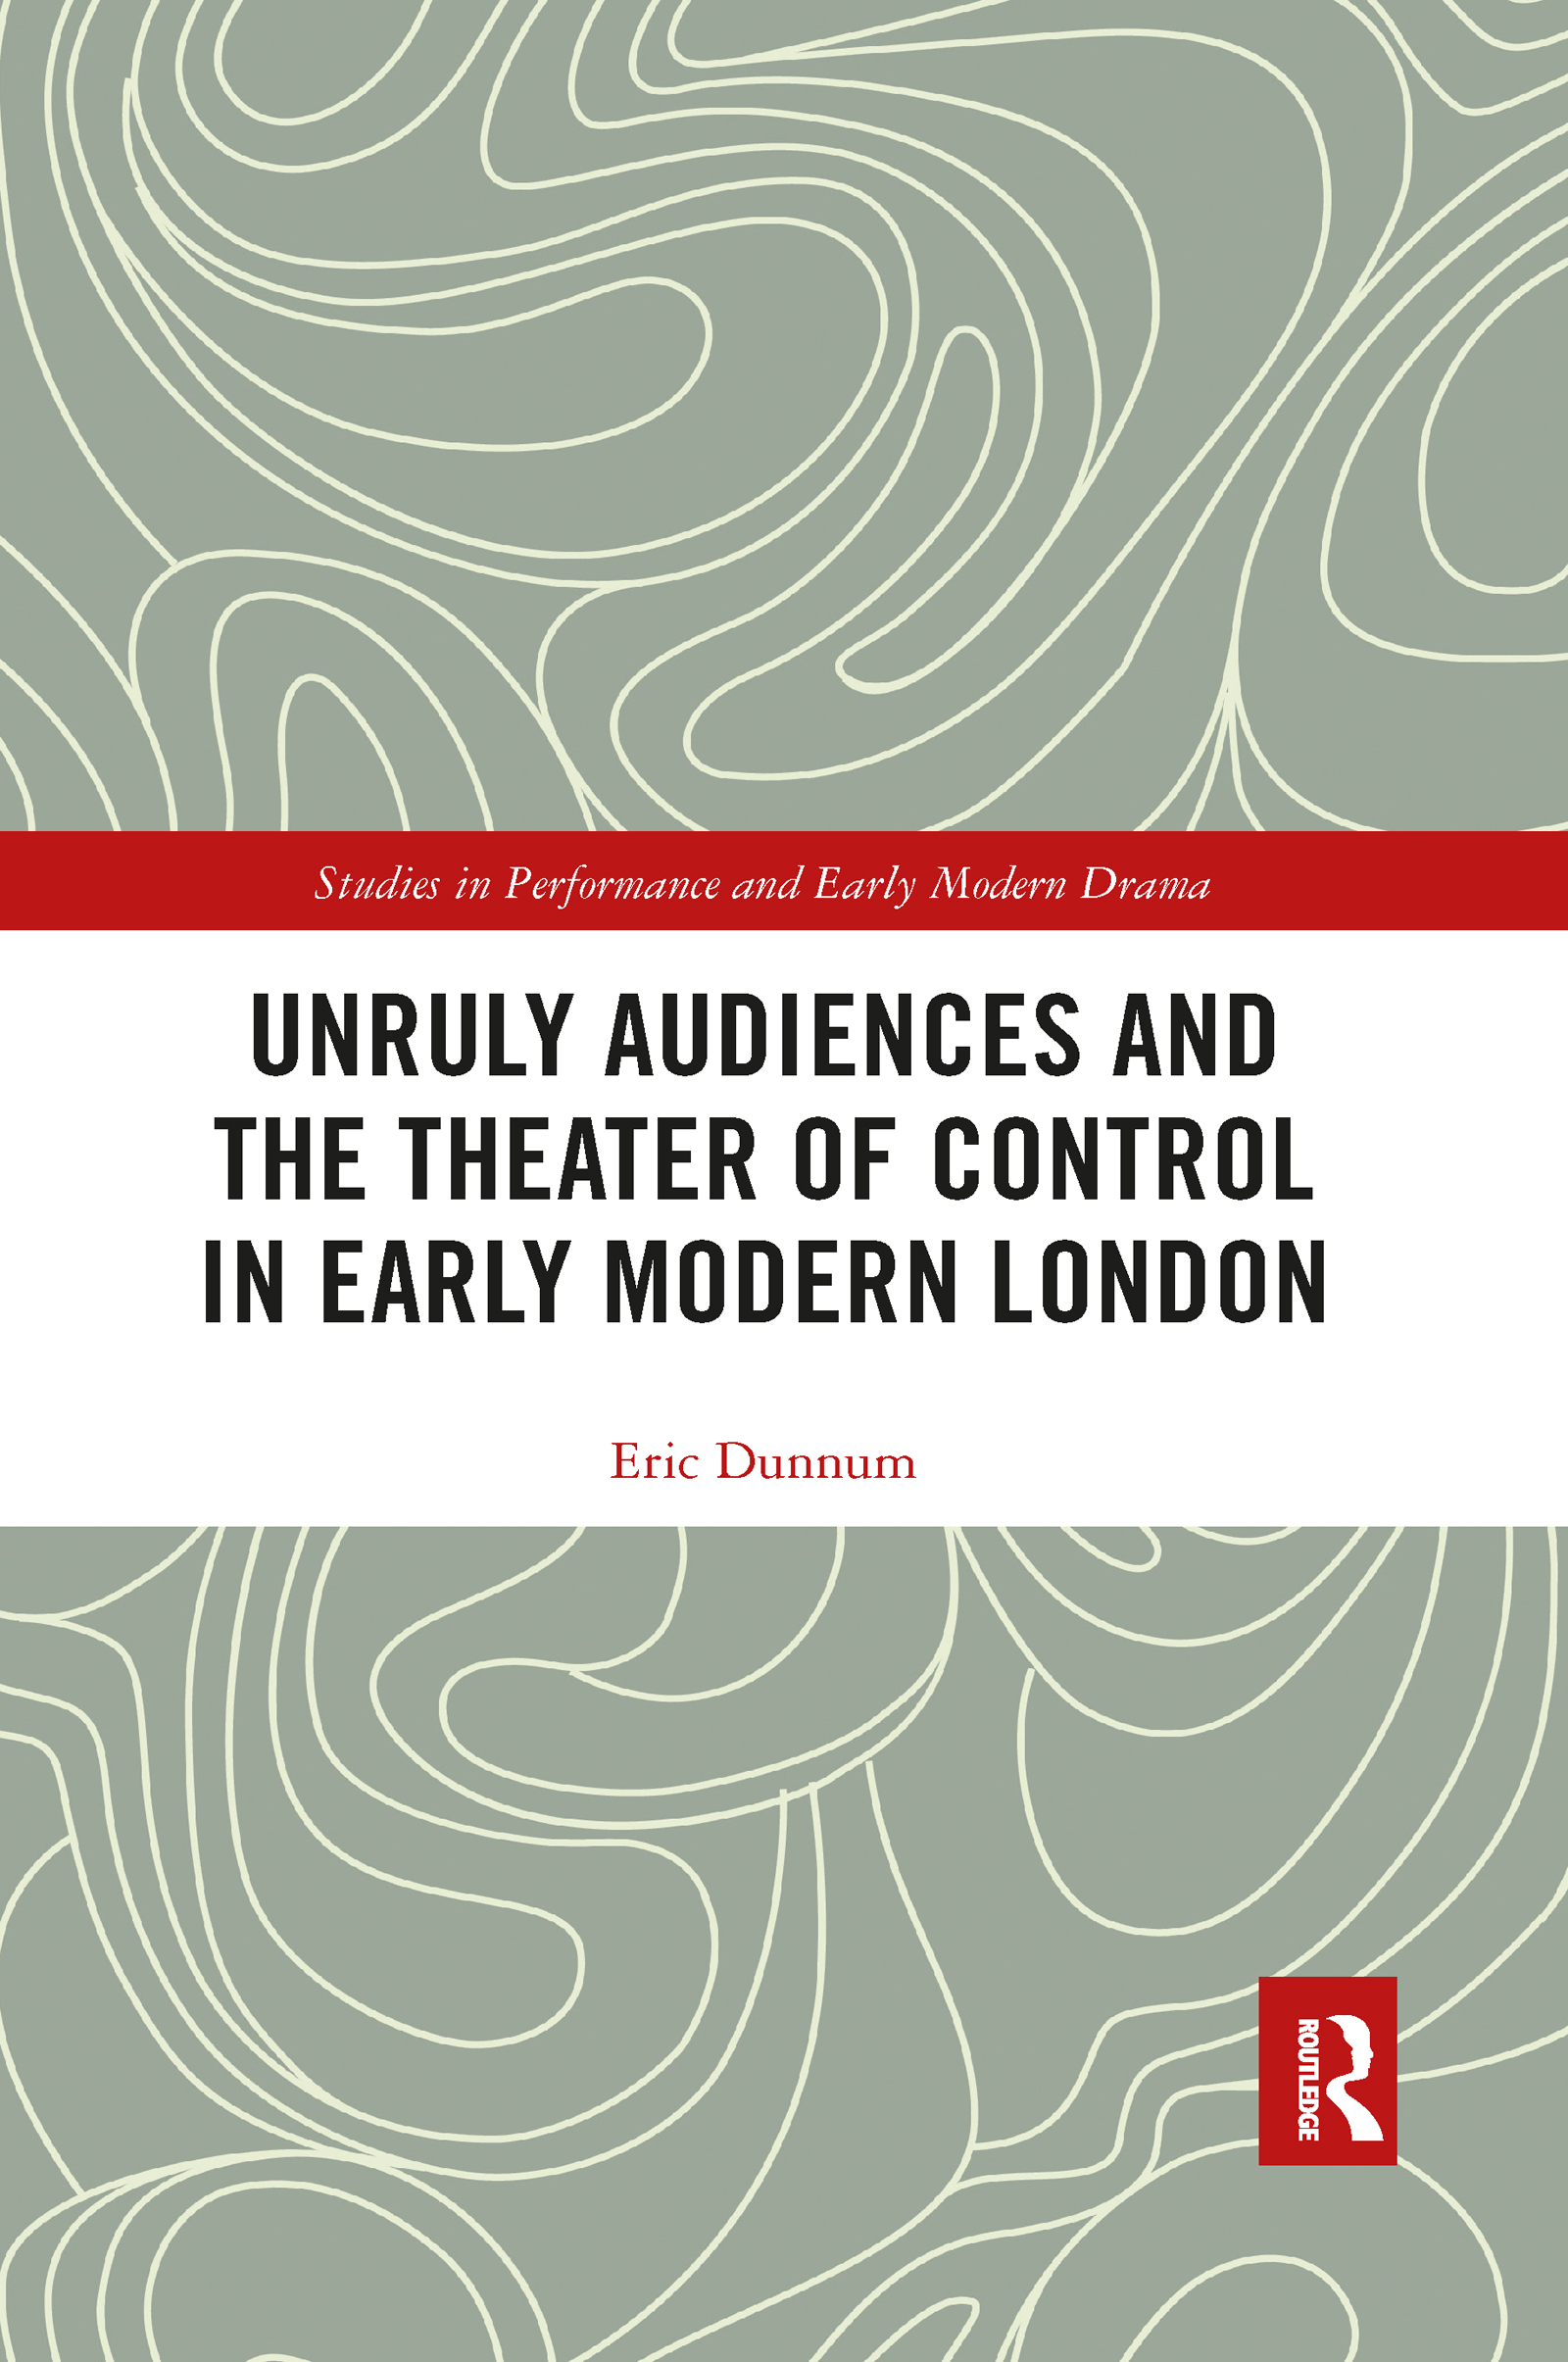 Unruly Audiences and the Theater of Control in Early Modern London